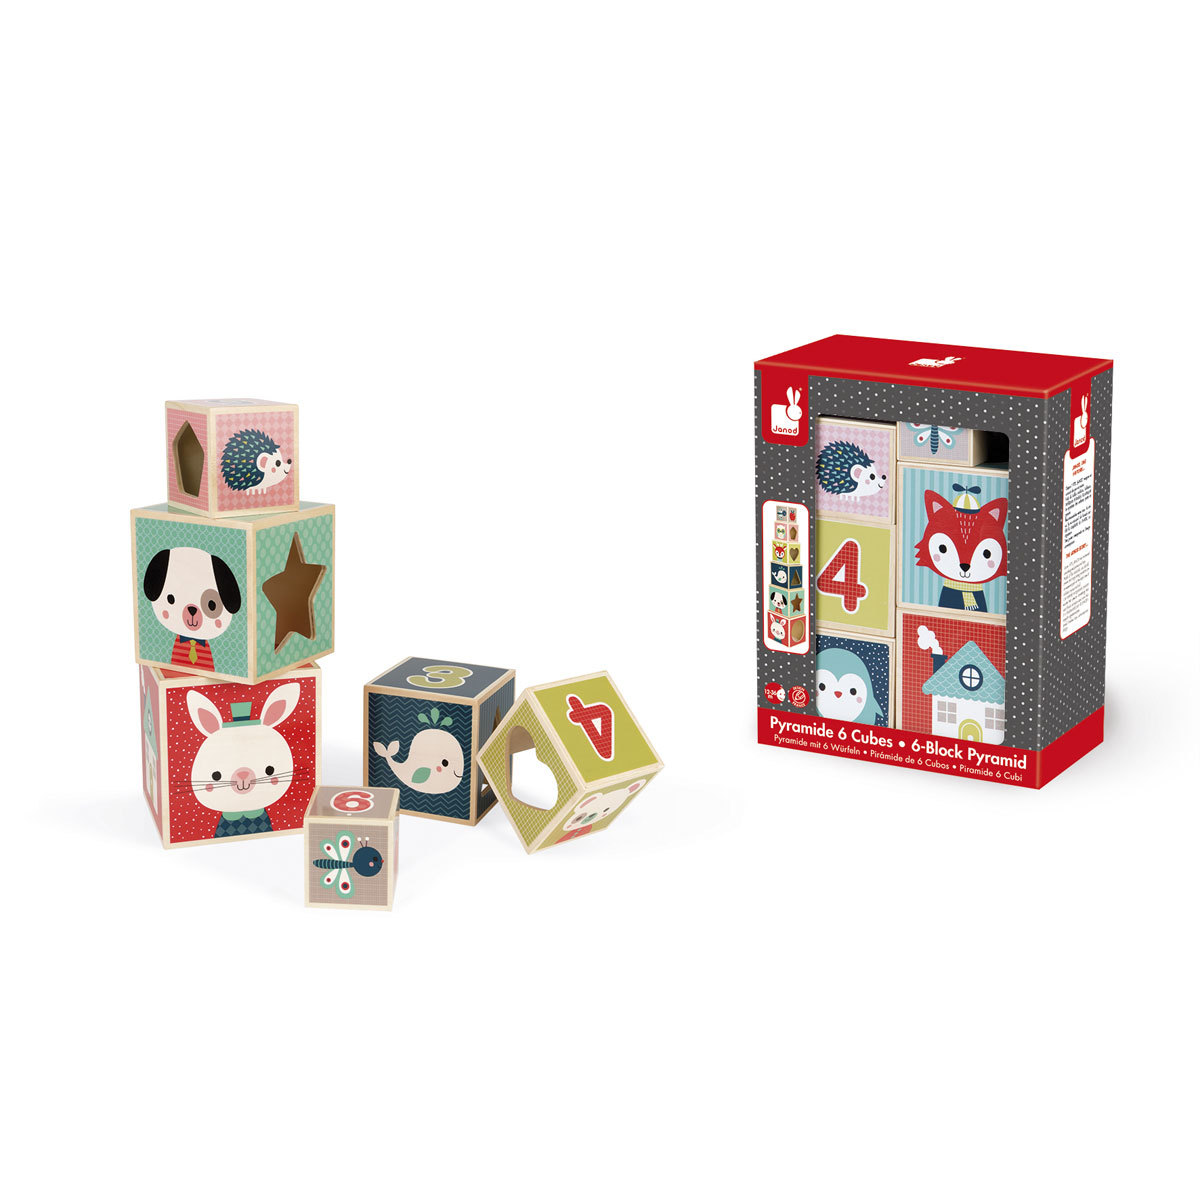 Mes premiers jouets Pyramide 6 Cubes - Baby Forest Pyramide 6 Cubes - Baby Forest